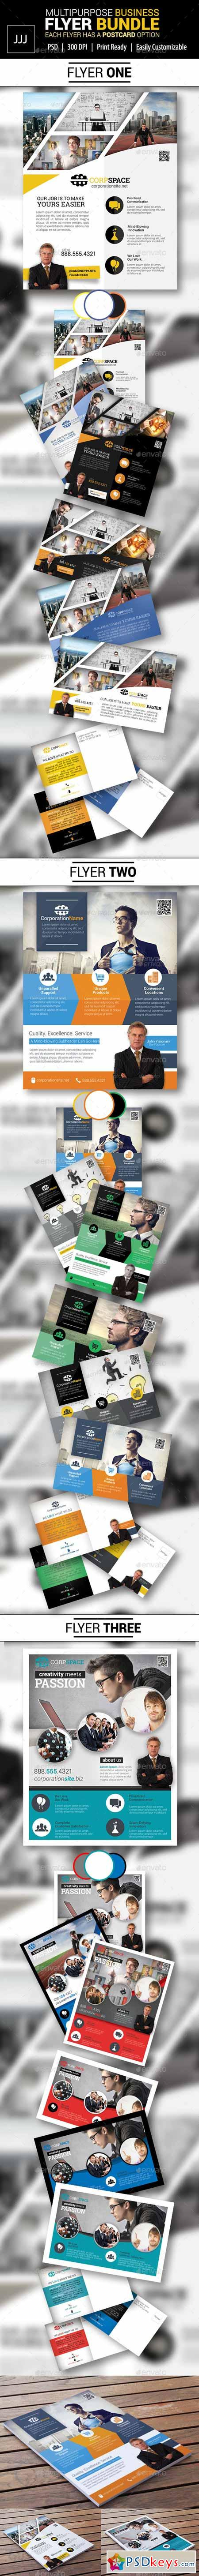 Business Flyer Bundle with Postcard Options 11551364